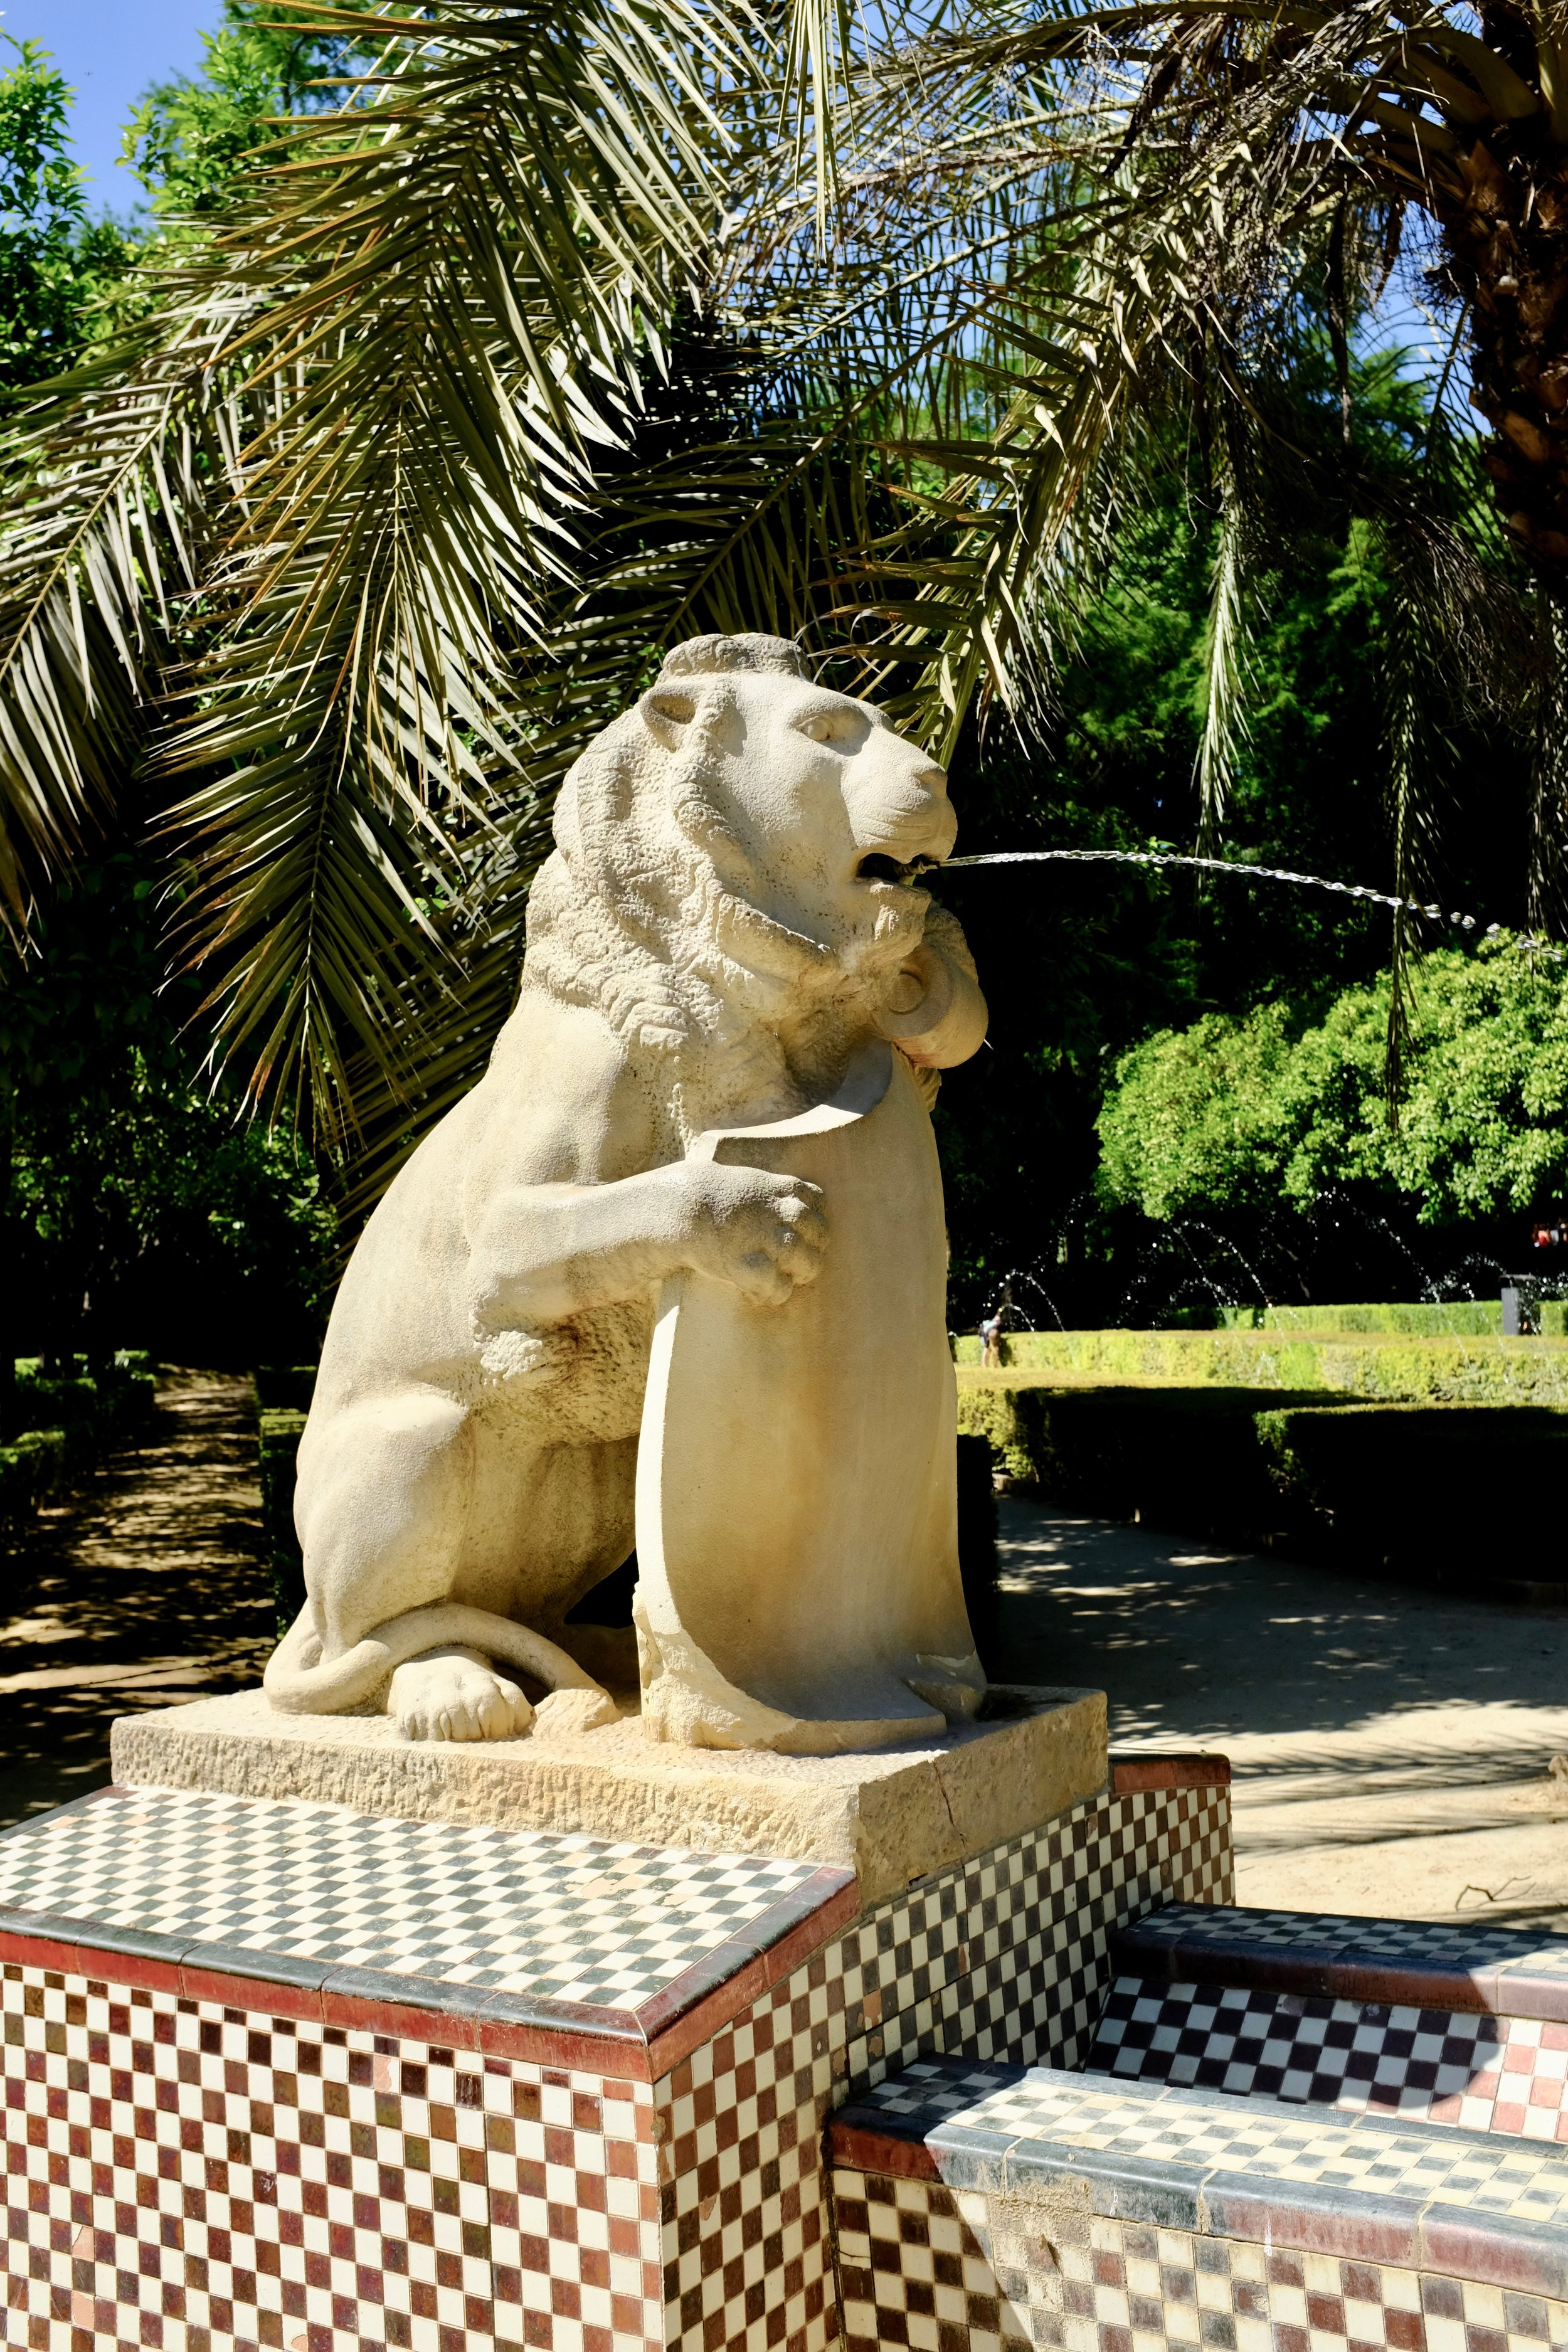 The Fountain of the Lions (Fuente de los Leones), each of the four lions are holding a shield.